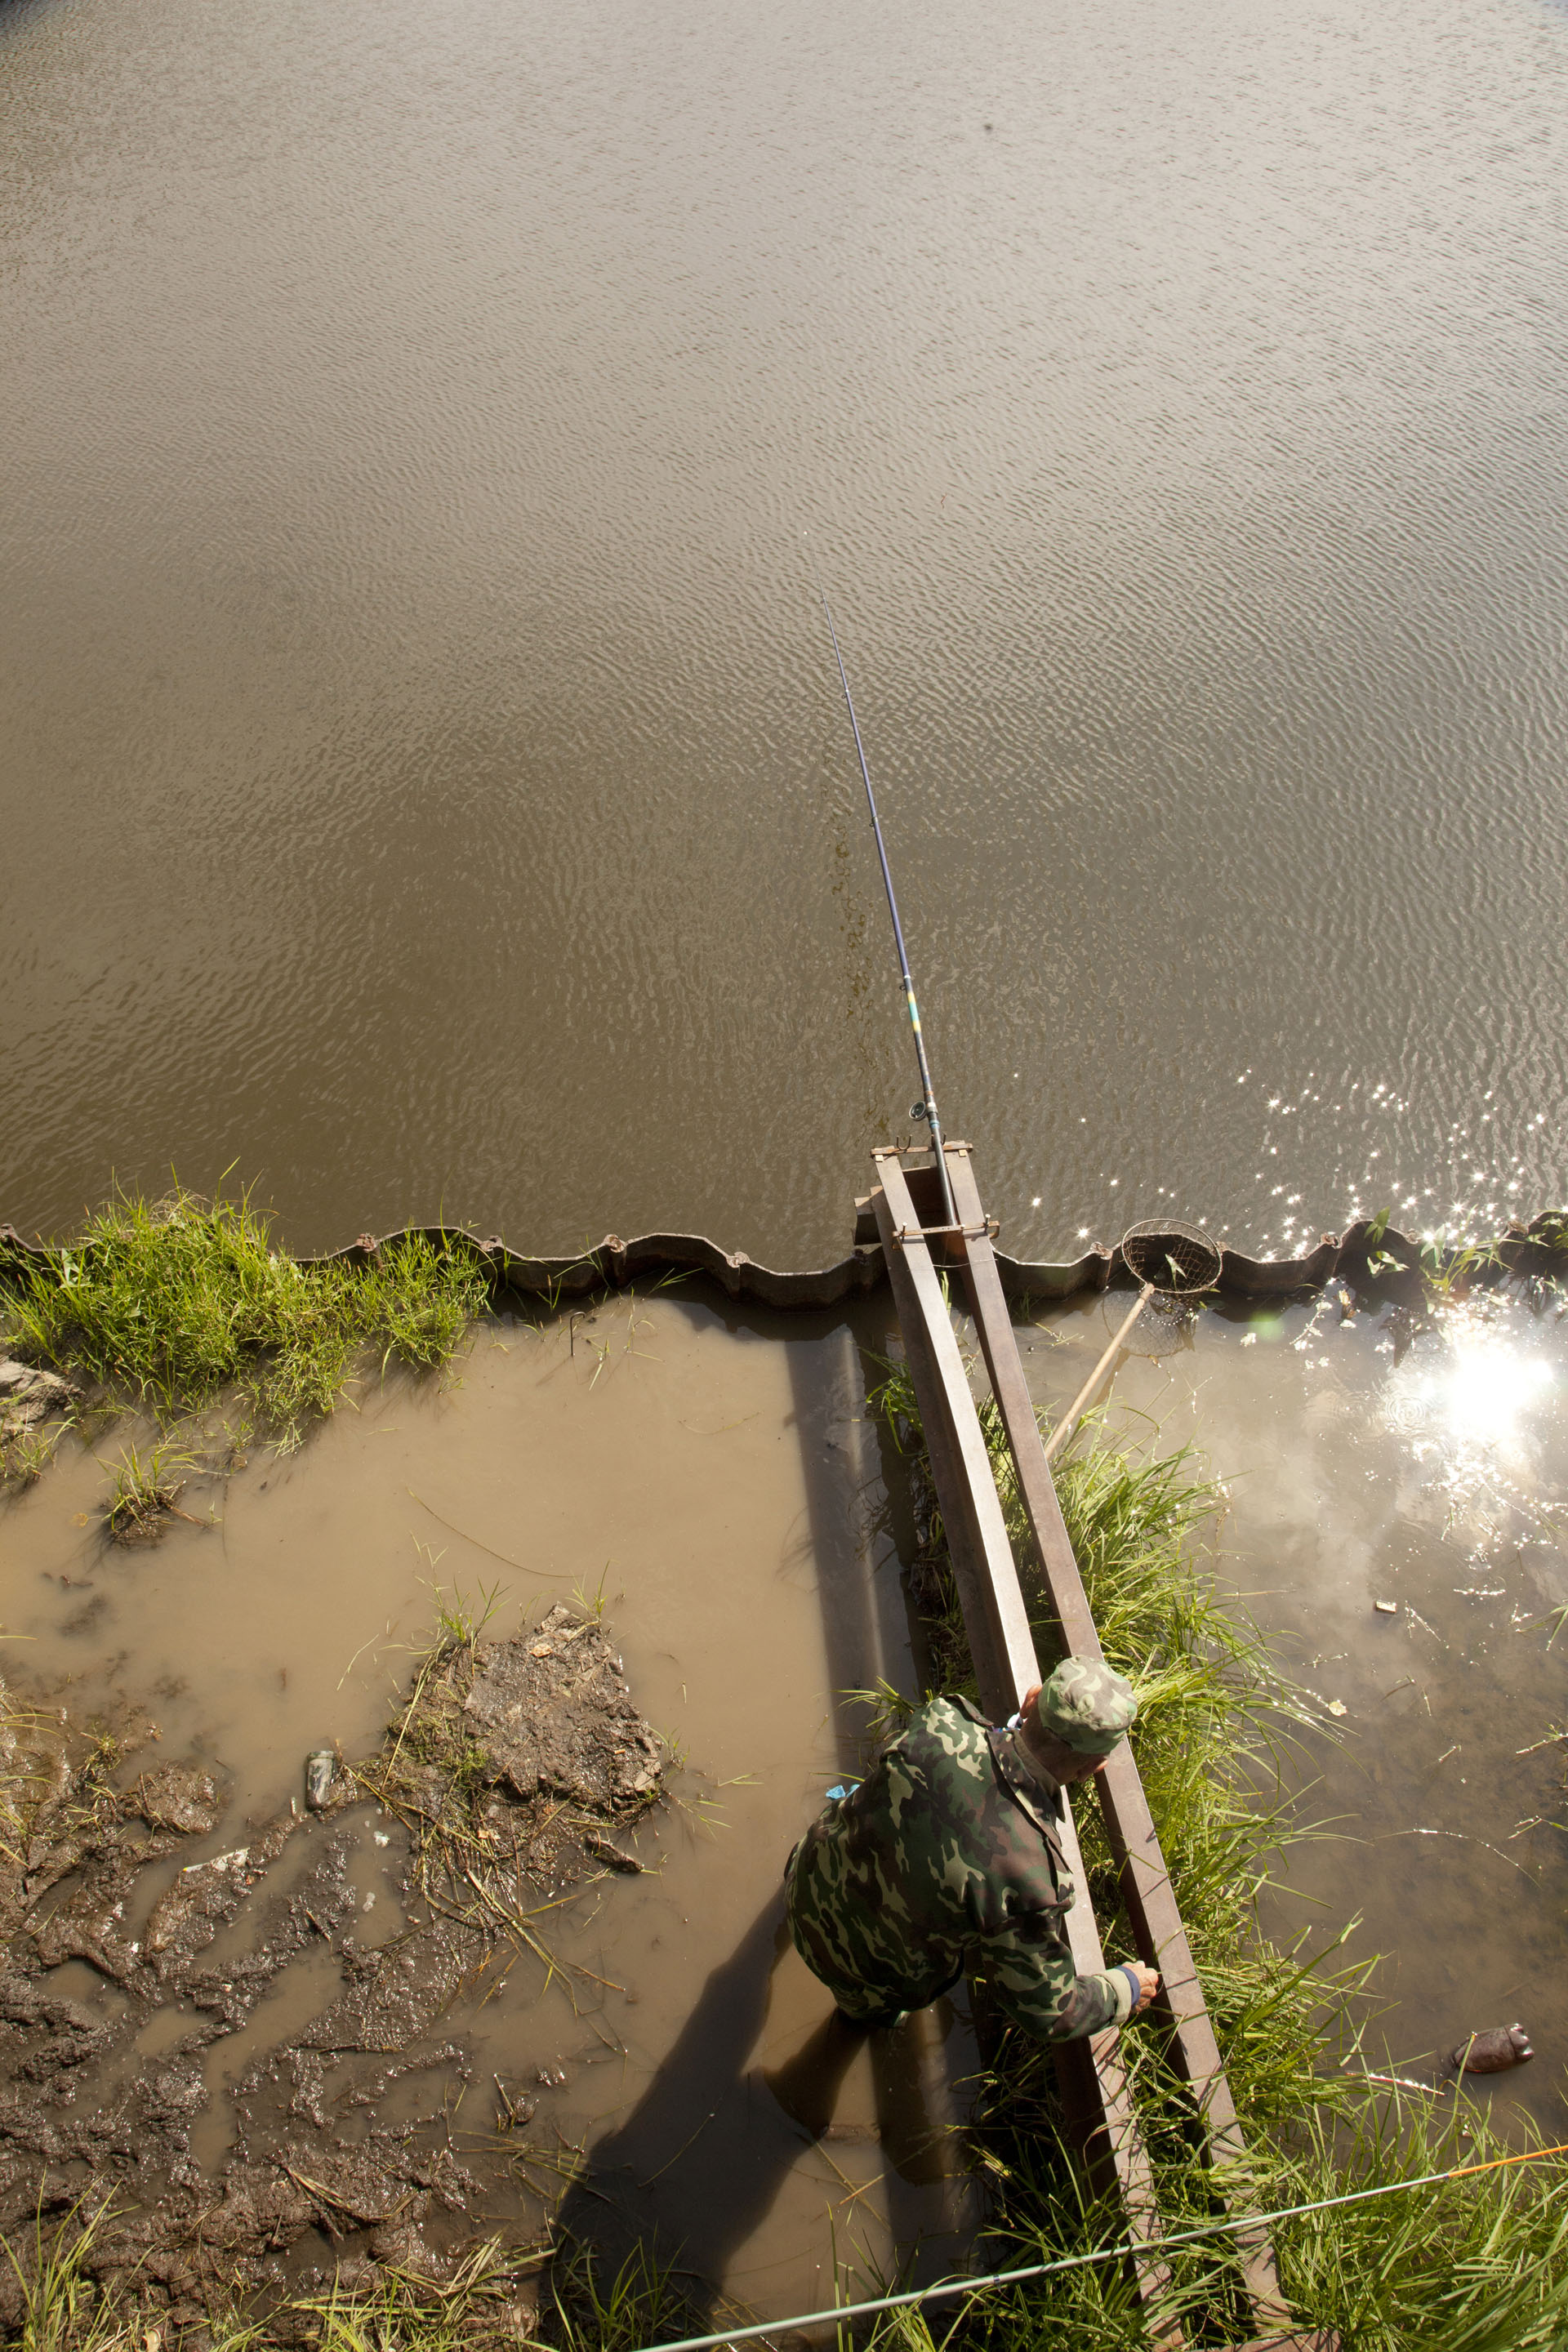 A man sets up his fishing pole under a bridge in town